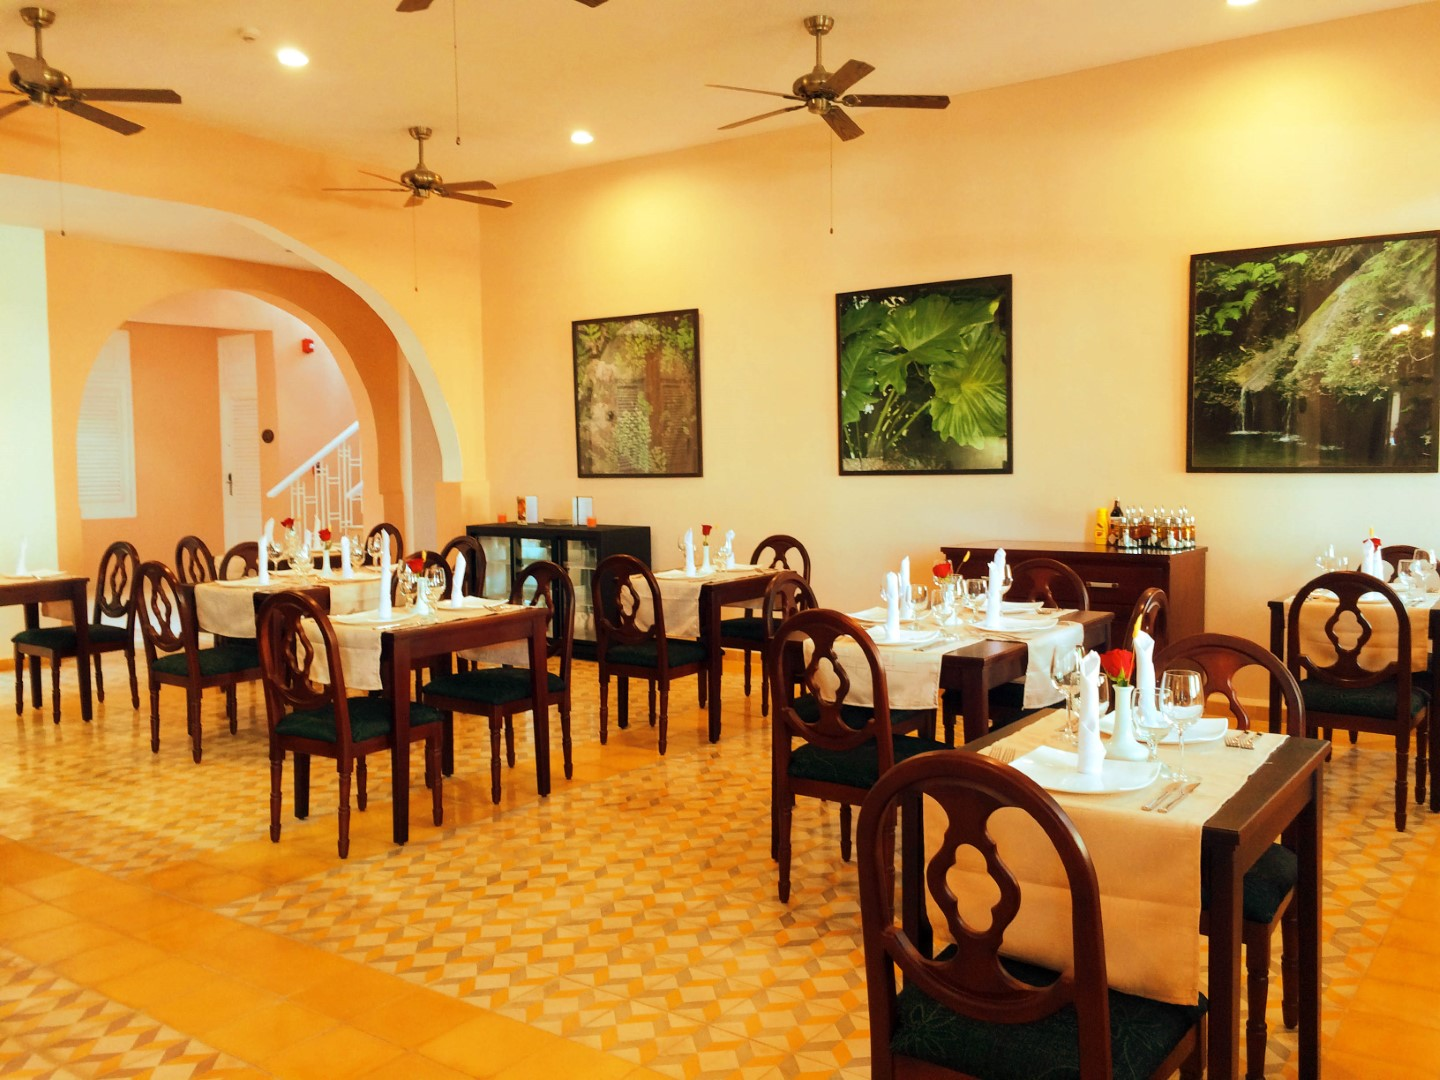 Restaurant at Hotel Central in Vinales, Cuba